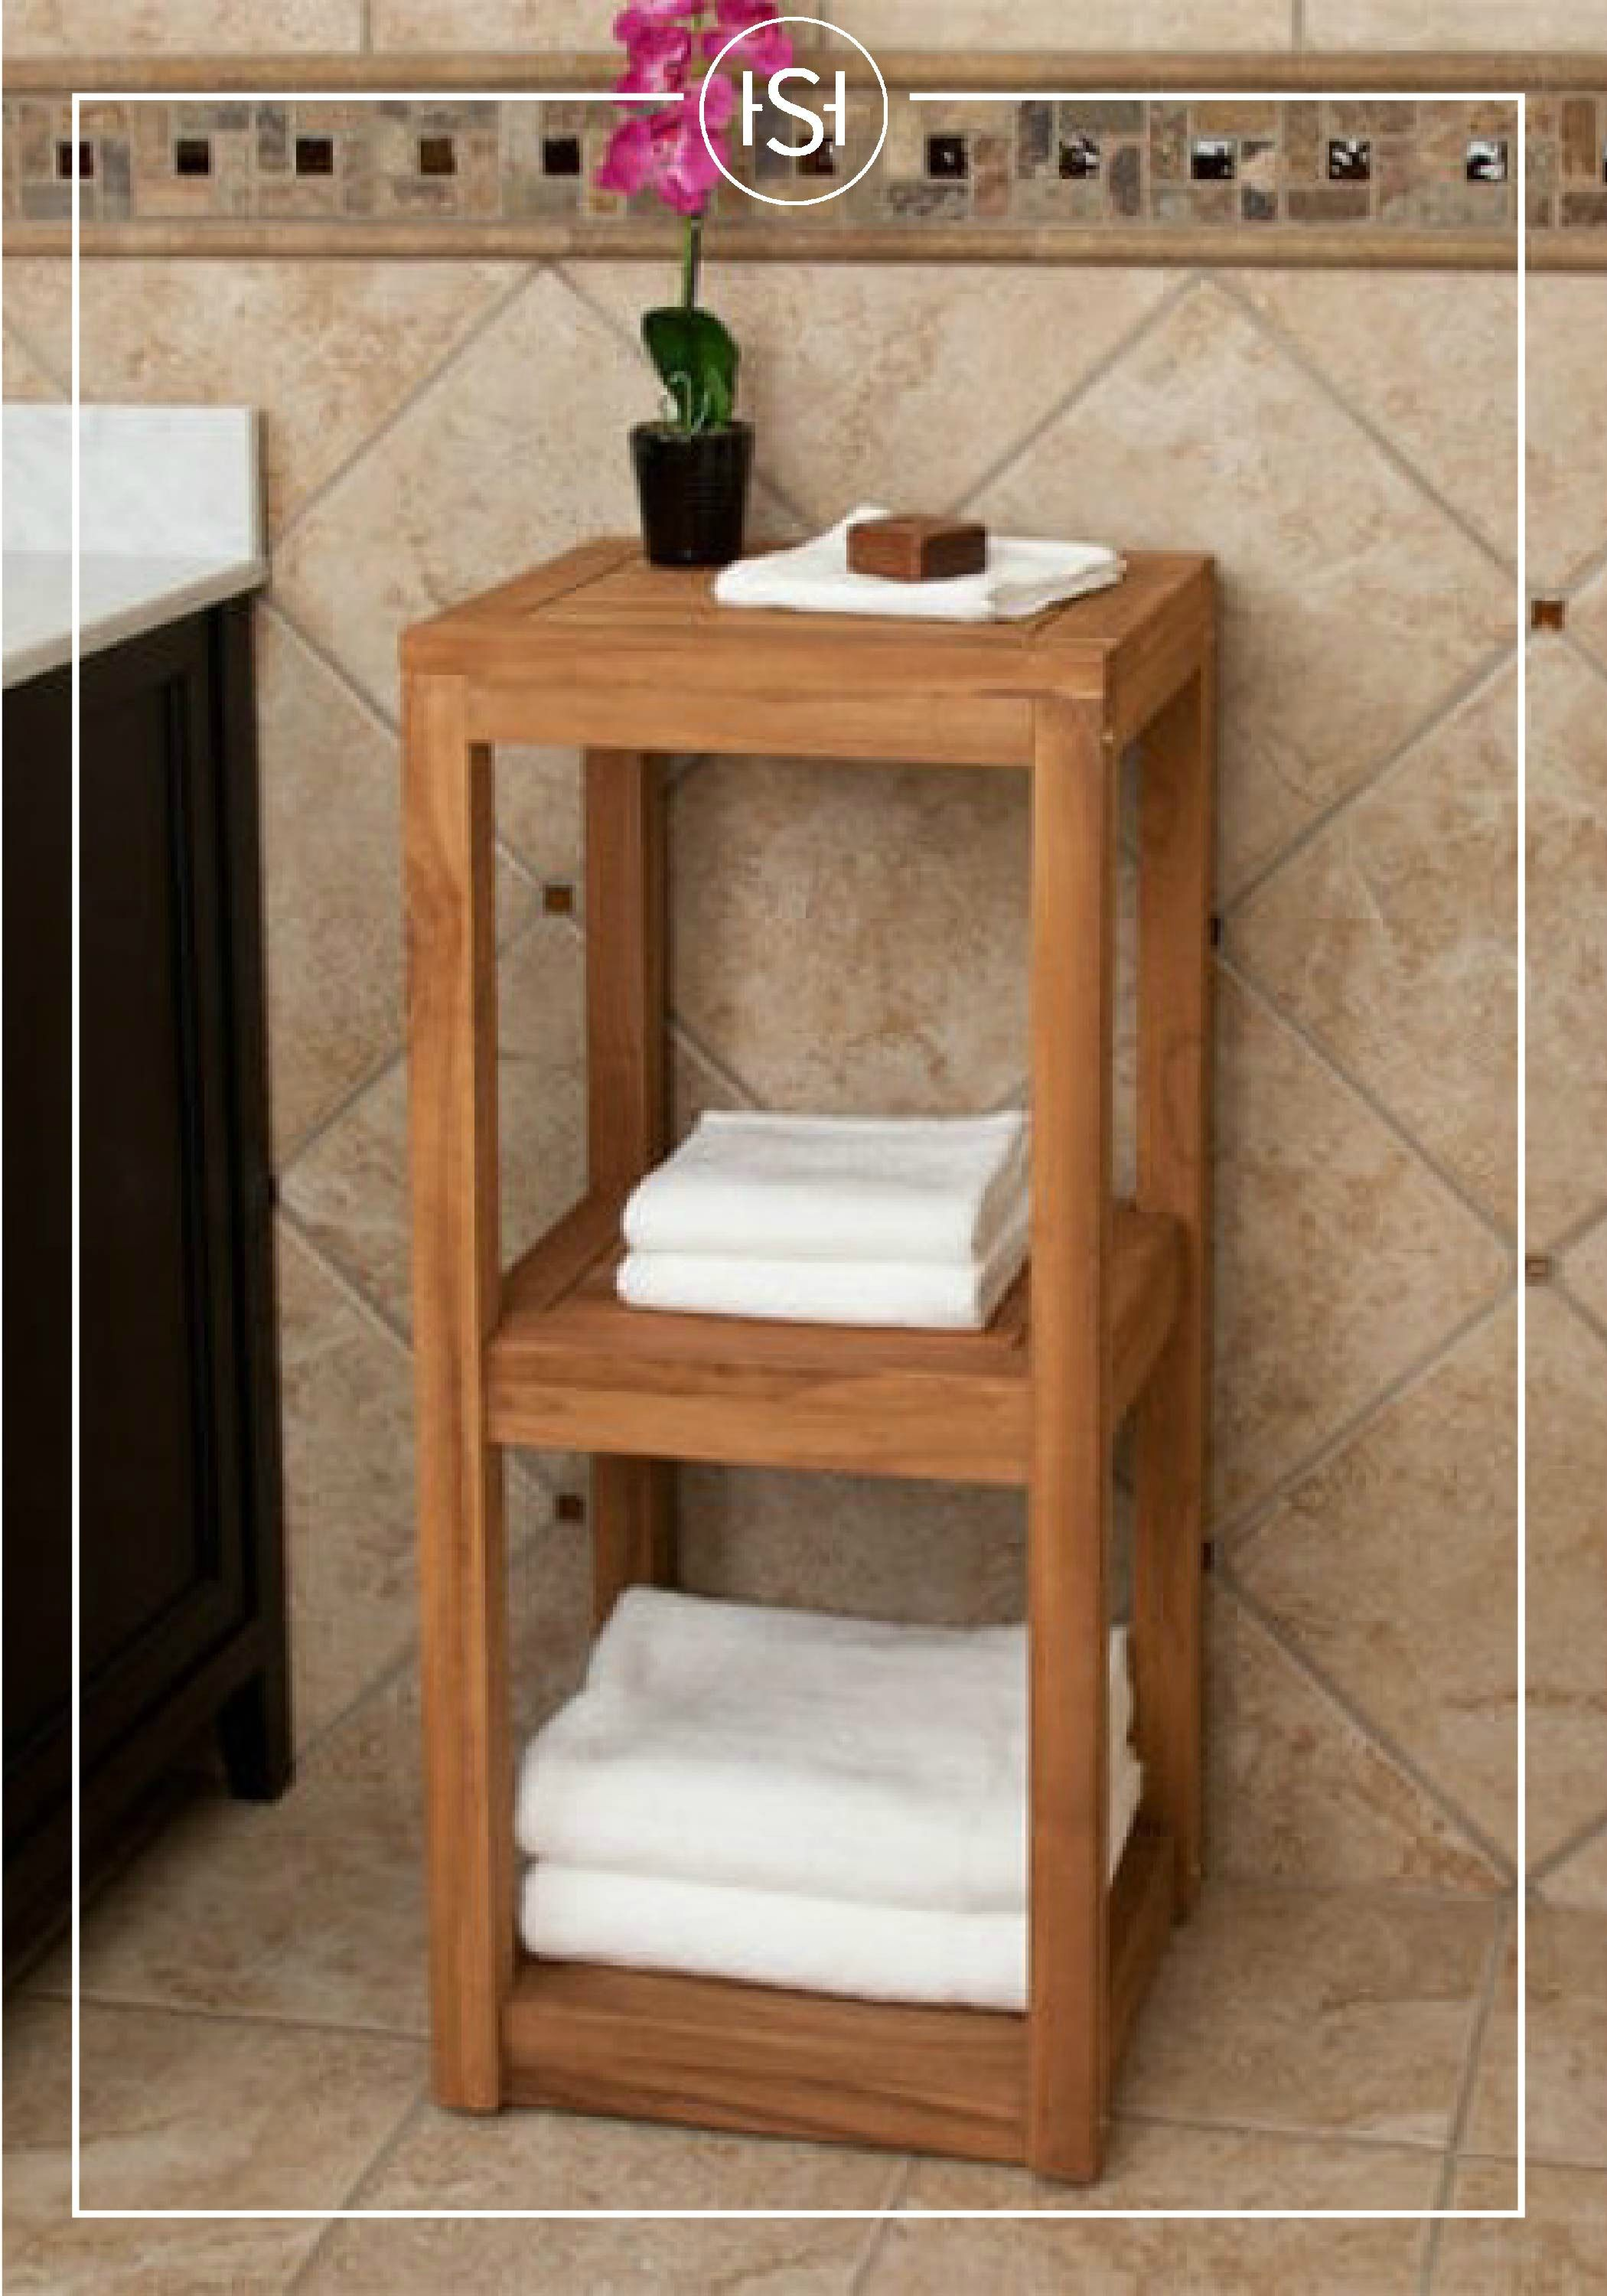 Three Tier Teak Towel Shelf | Pinterest | Towel shelf, Teak wood and ...